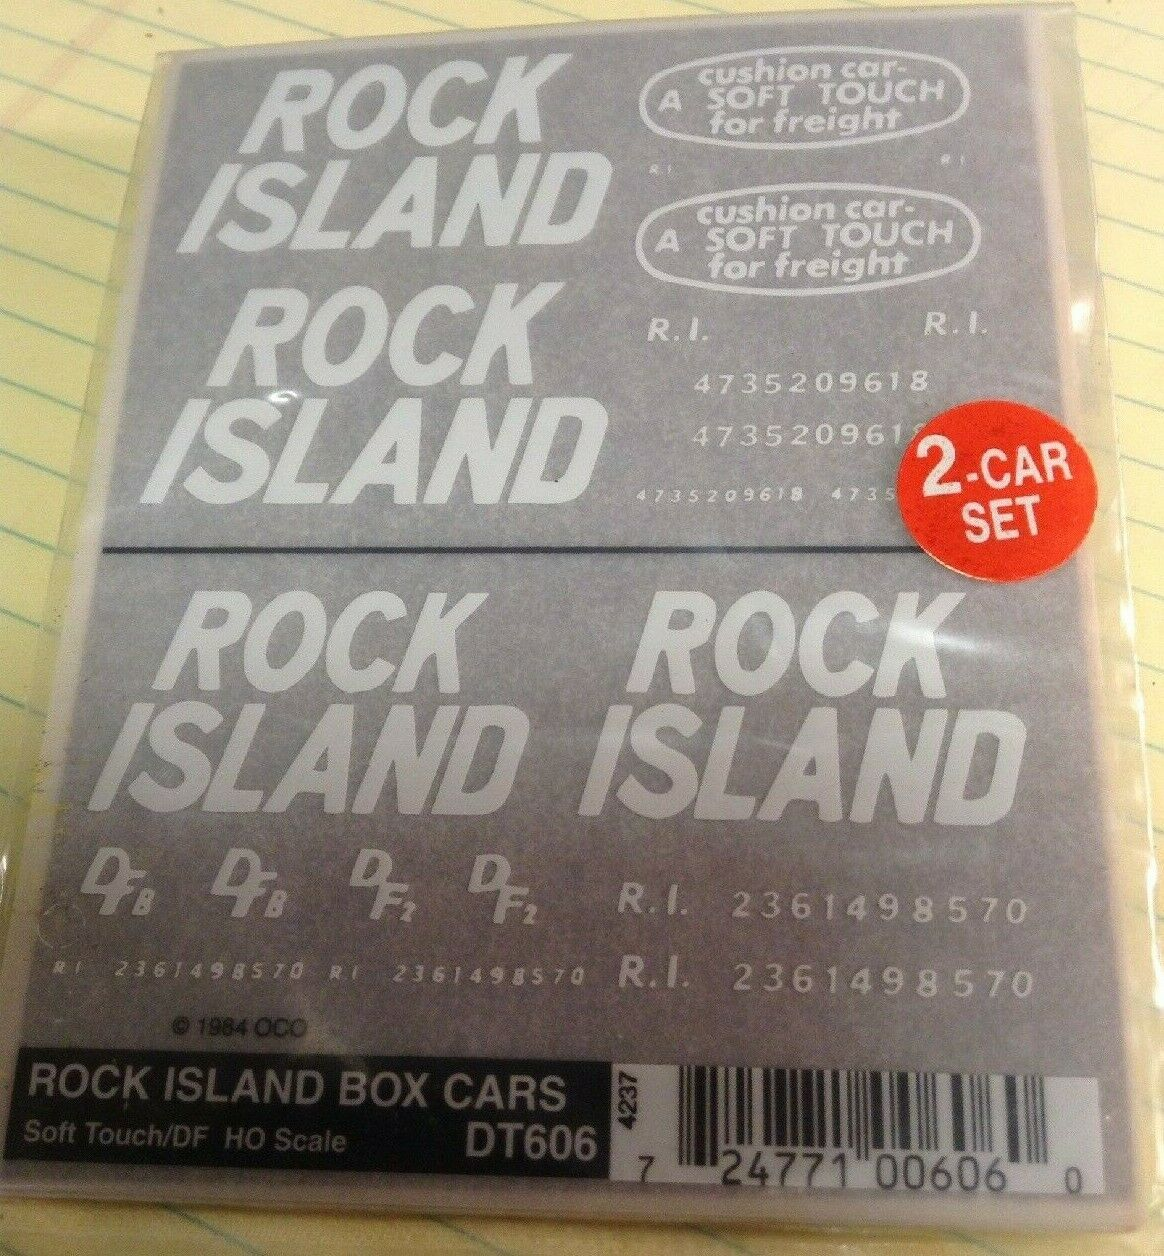 Rock Island Box Car Soft Touch-DFE Dry Transfer Decals Woodland Scenics